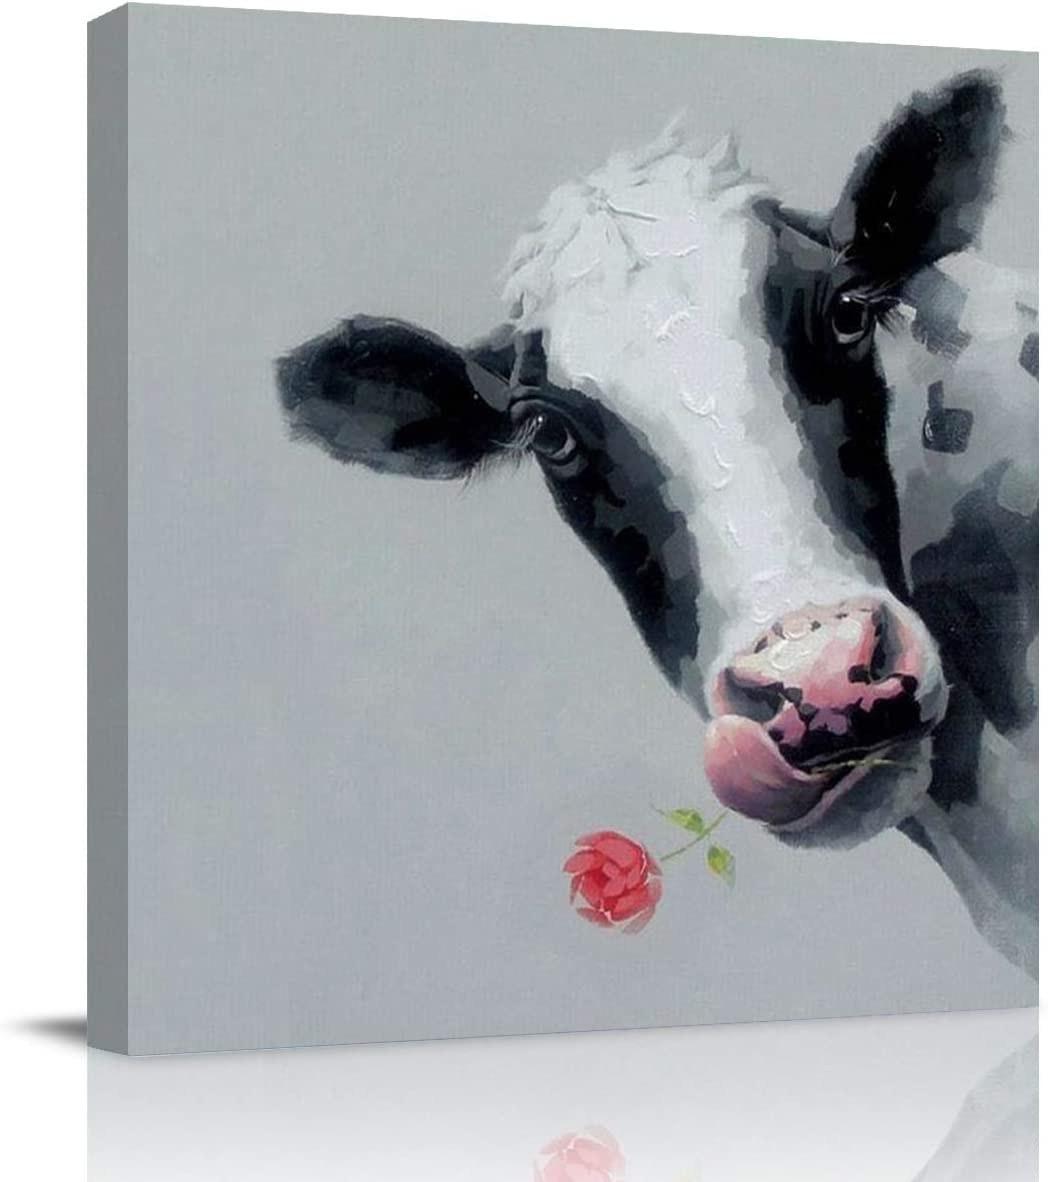 Square Canvas Print Wall Art for Bathroom/Kitchen Wall Decor Cow Oil Paintings Cattle Picture on Canvas for Nursery Kids Bedroom Giclee Print Gallery Wrap Framed and Ready to Hang-12x12in